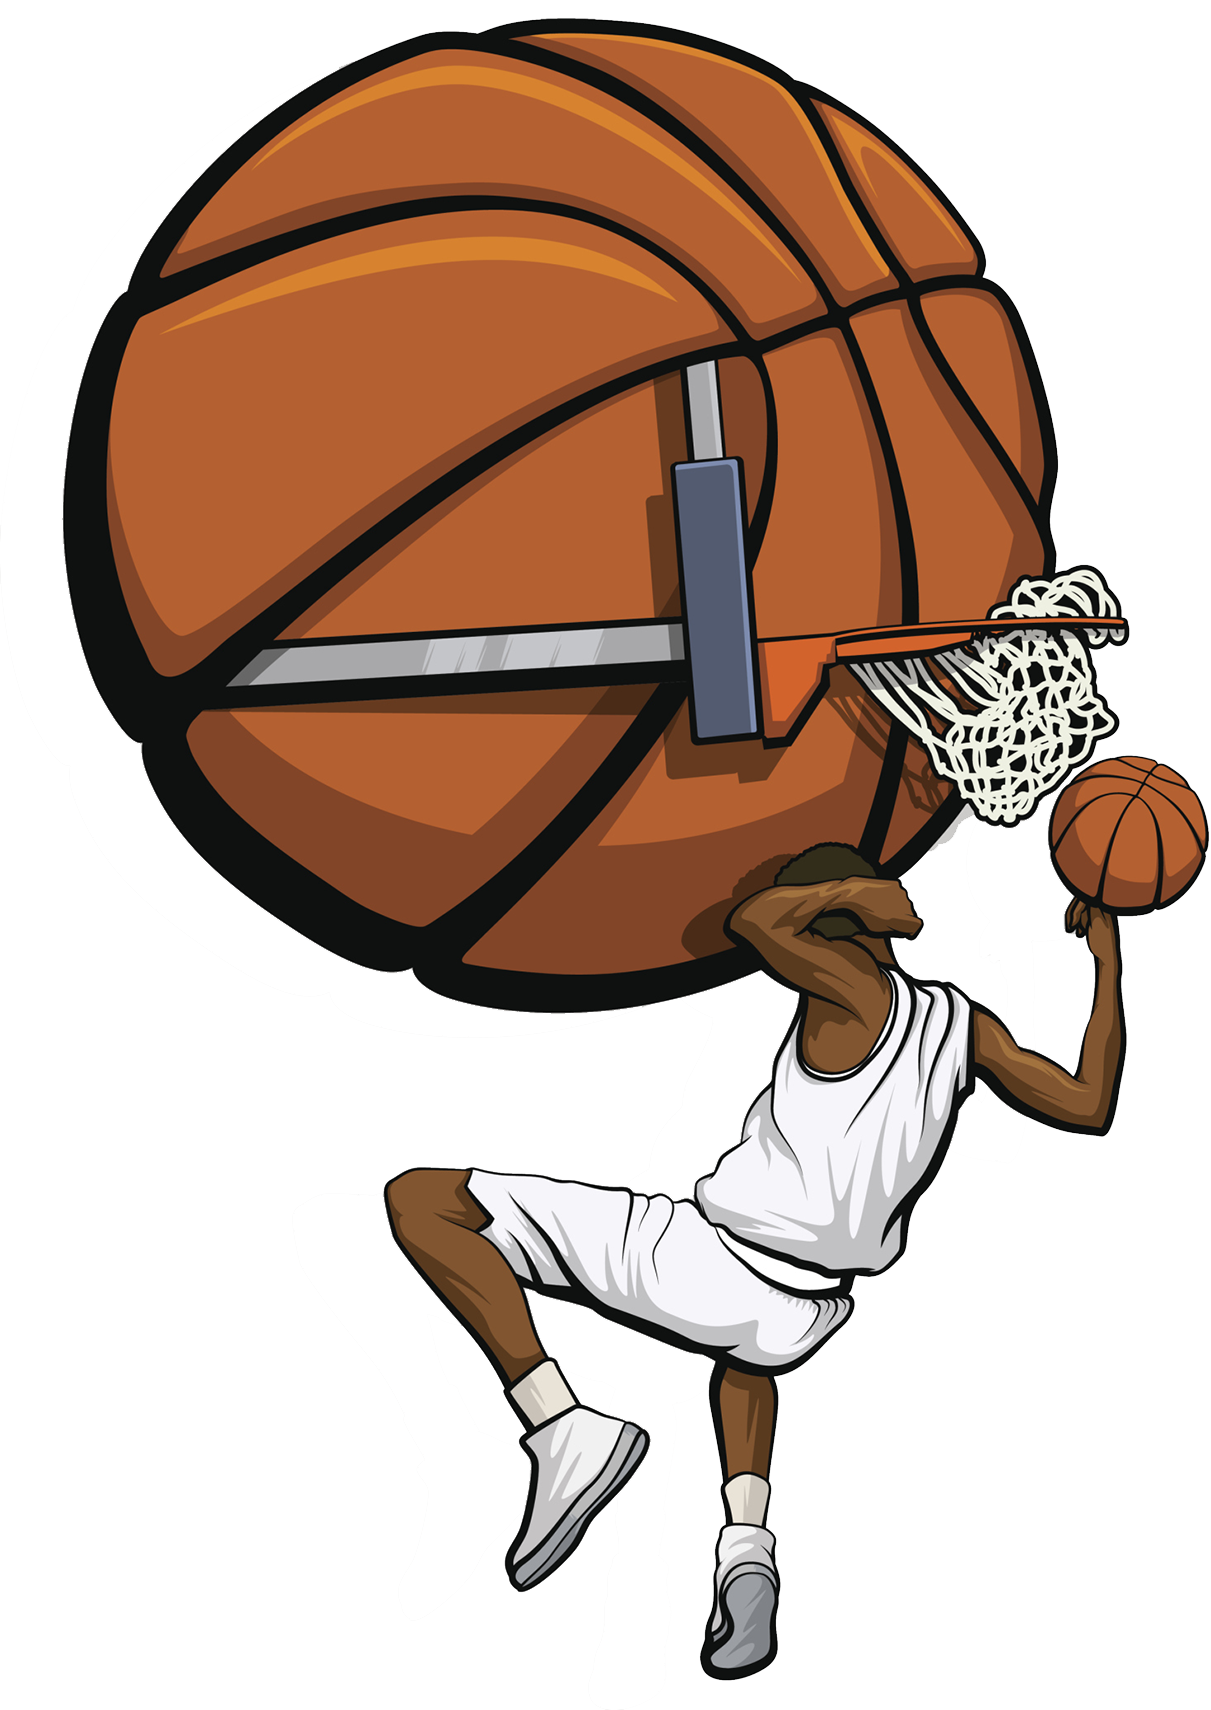 Basketball players dunking clipart graphic download Basketball Slam dunk Clip art - Basketball comics 1211*1710 ... graphic download